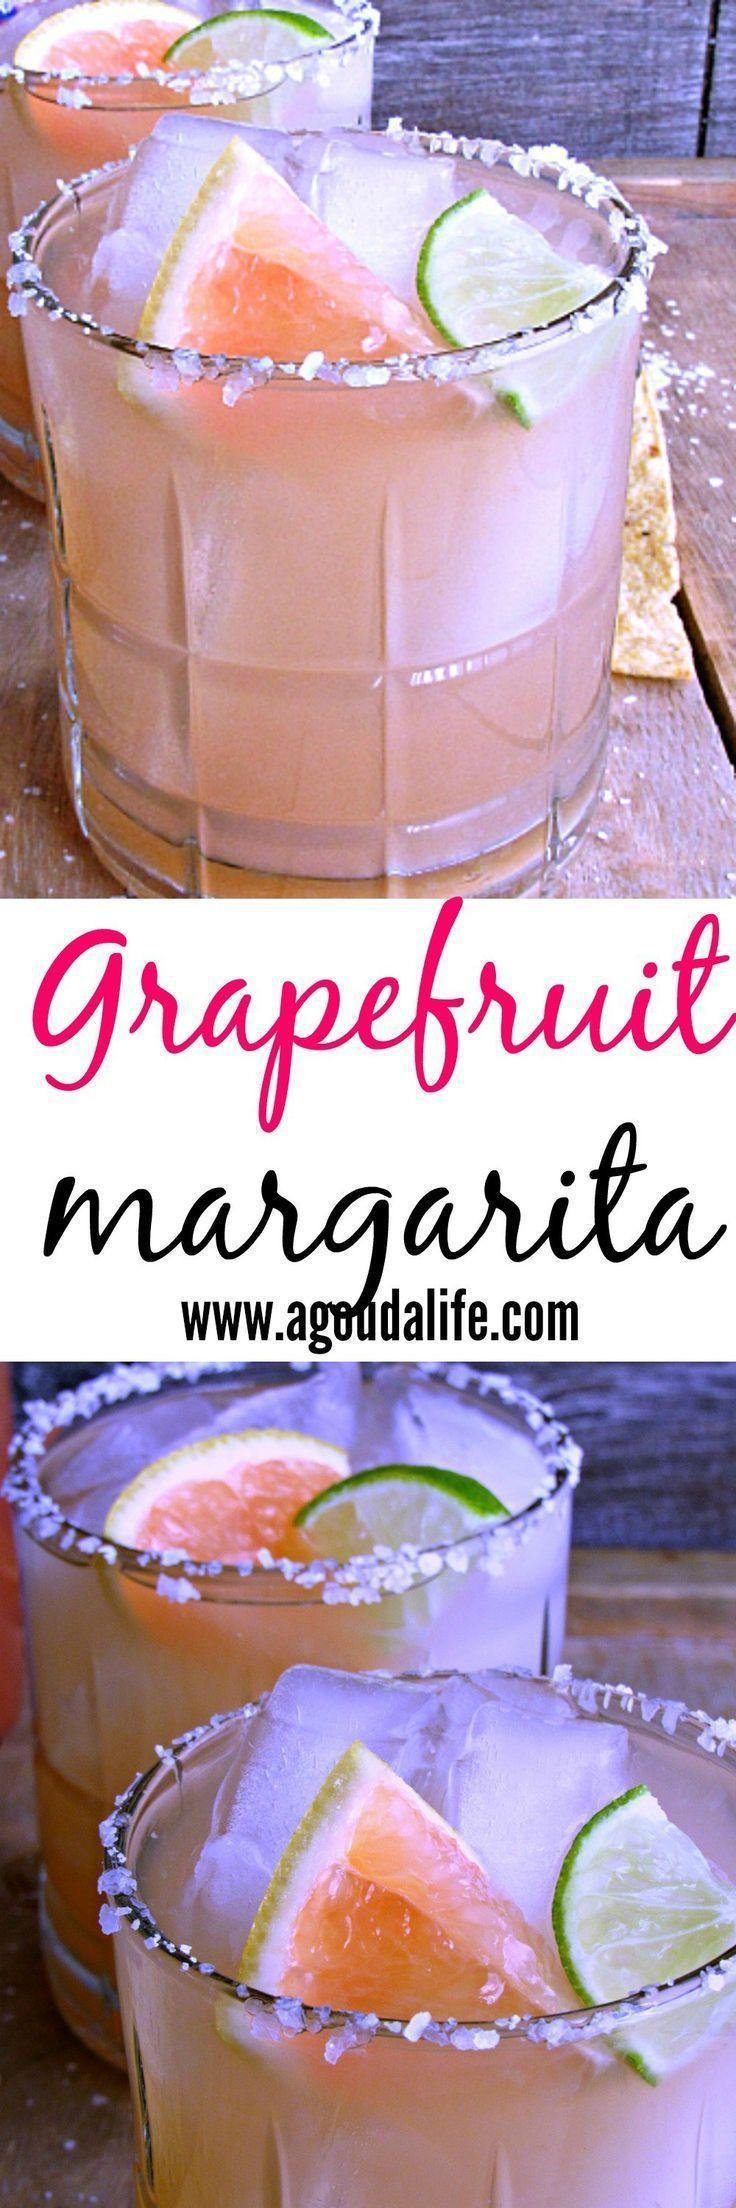 Wedding - Grapefruit Margarita ~ The Perfect Balance Of Sweet And Tangy ~ A Classic Beverage With A Tropical Twist. Enjoy With Chips And Salsa For Easy Enter…